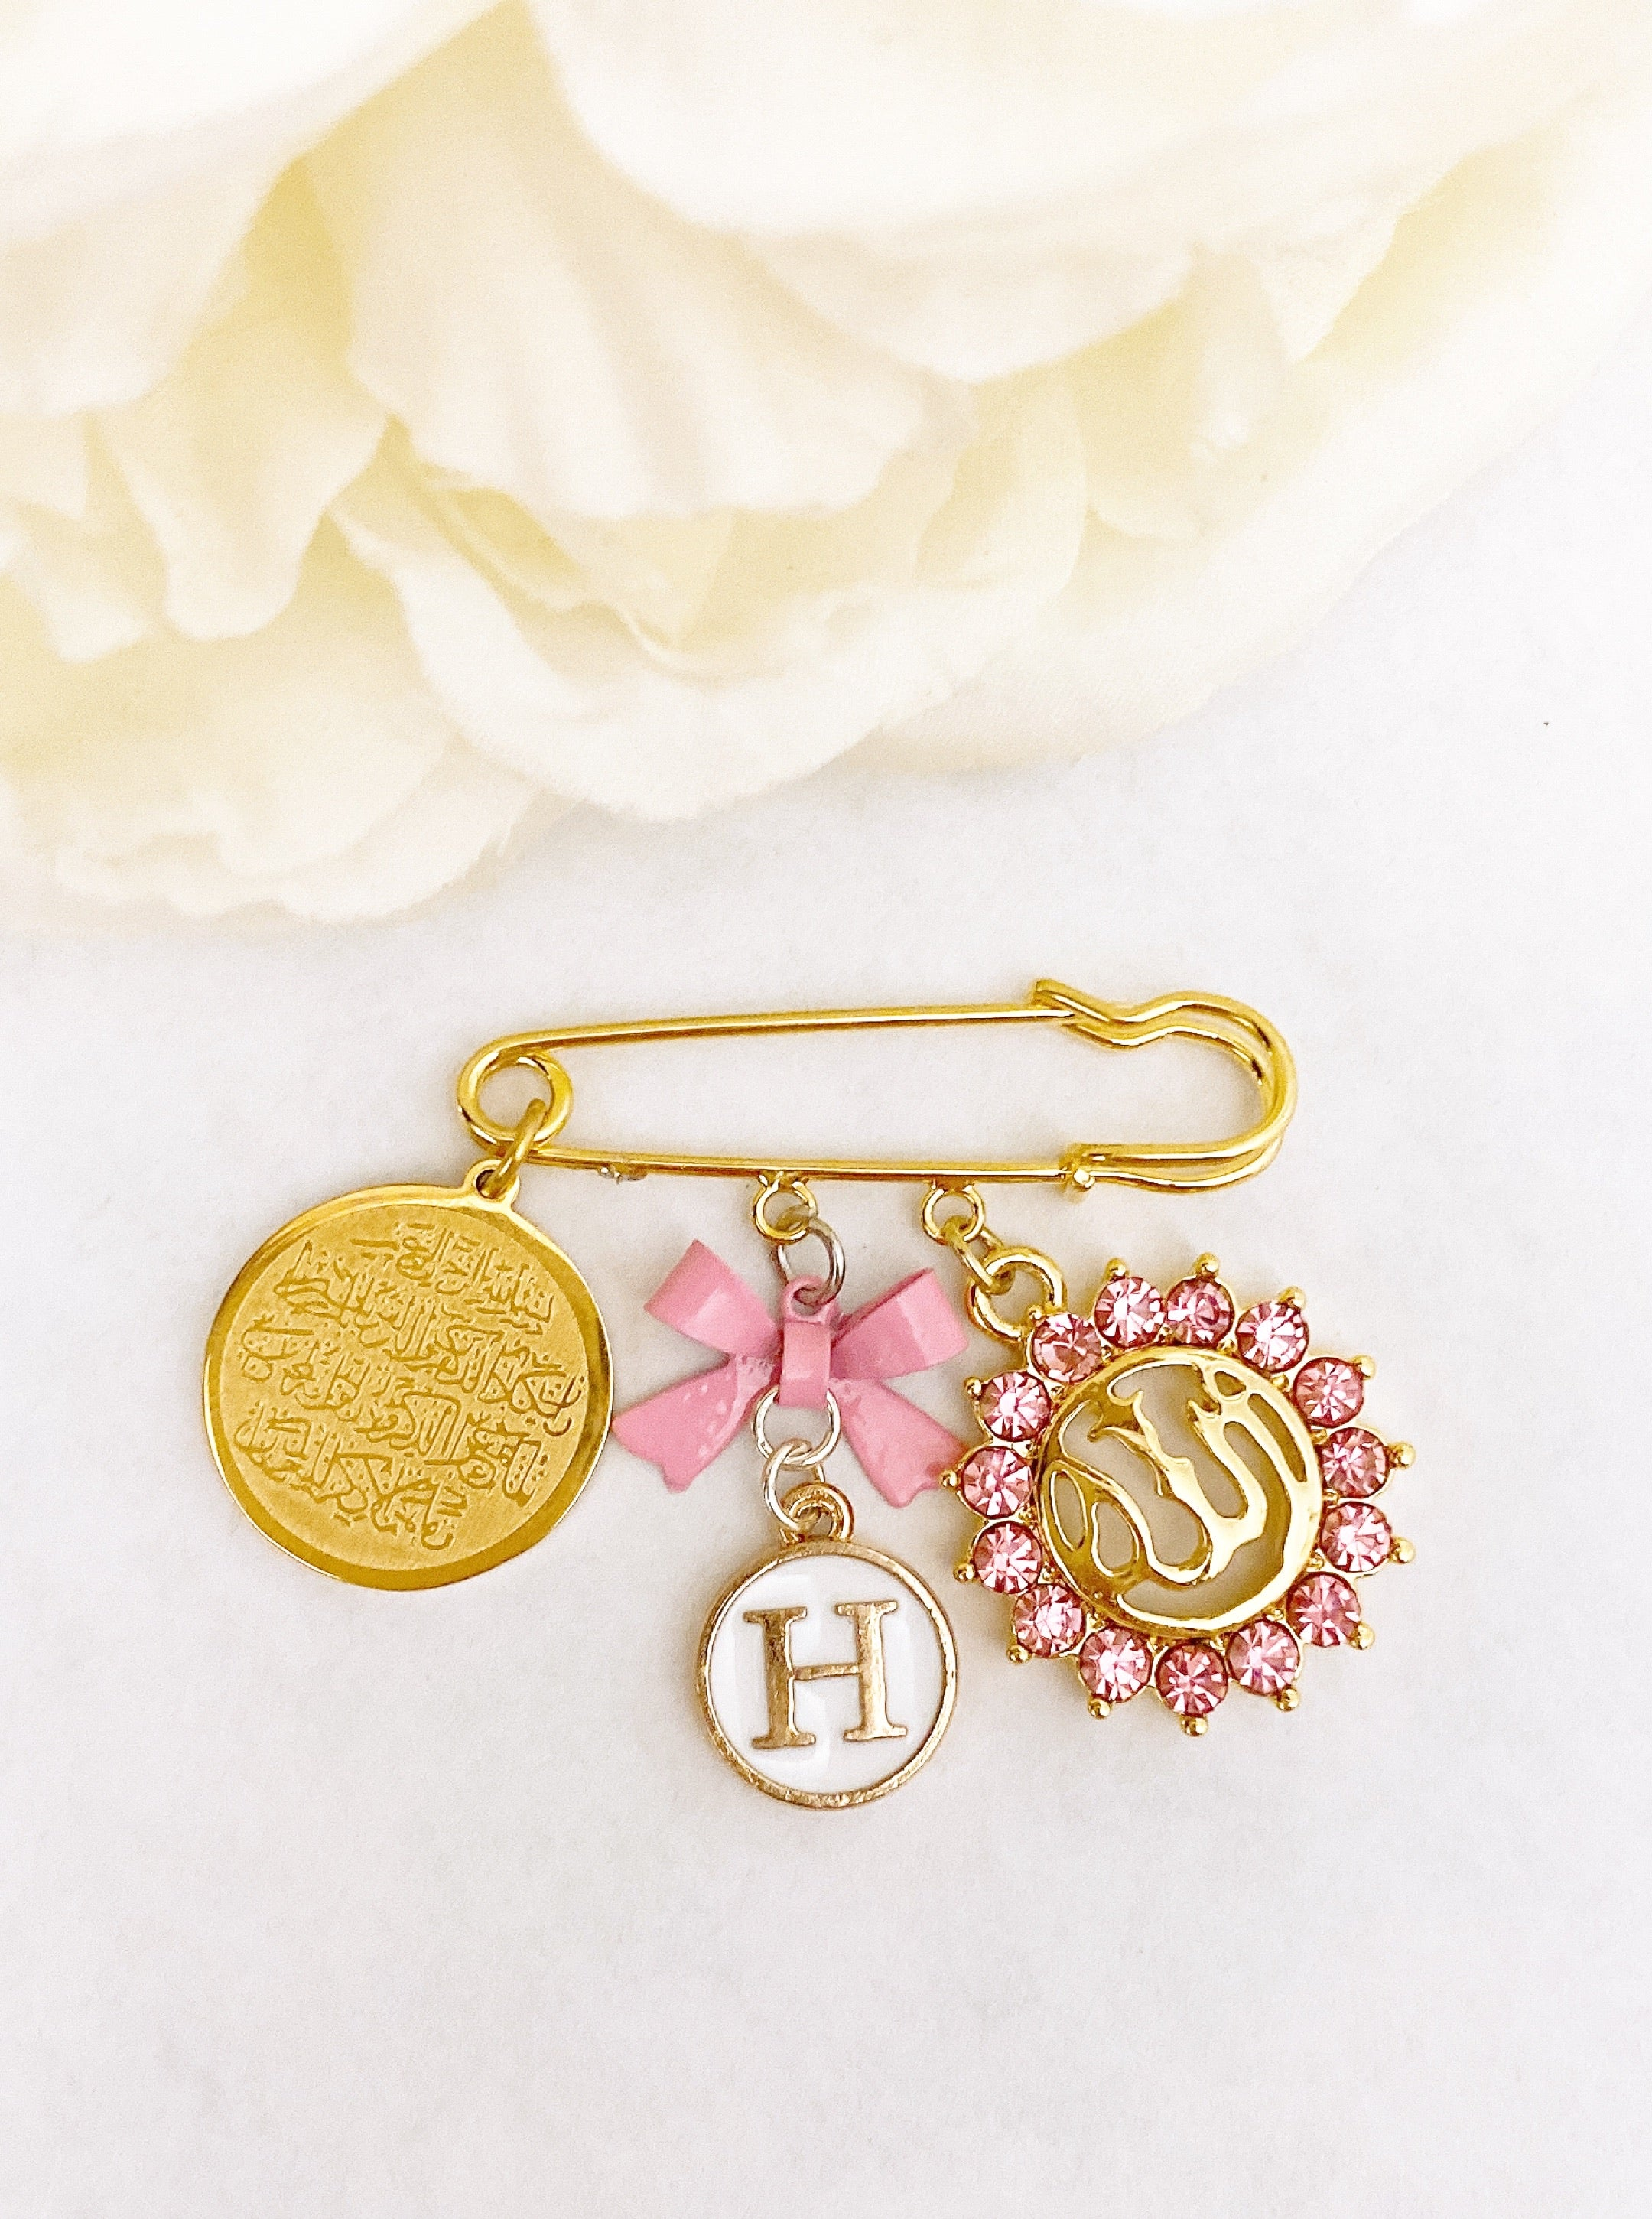 Small gold initial pin for girl